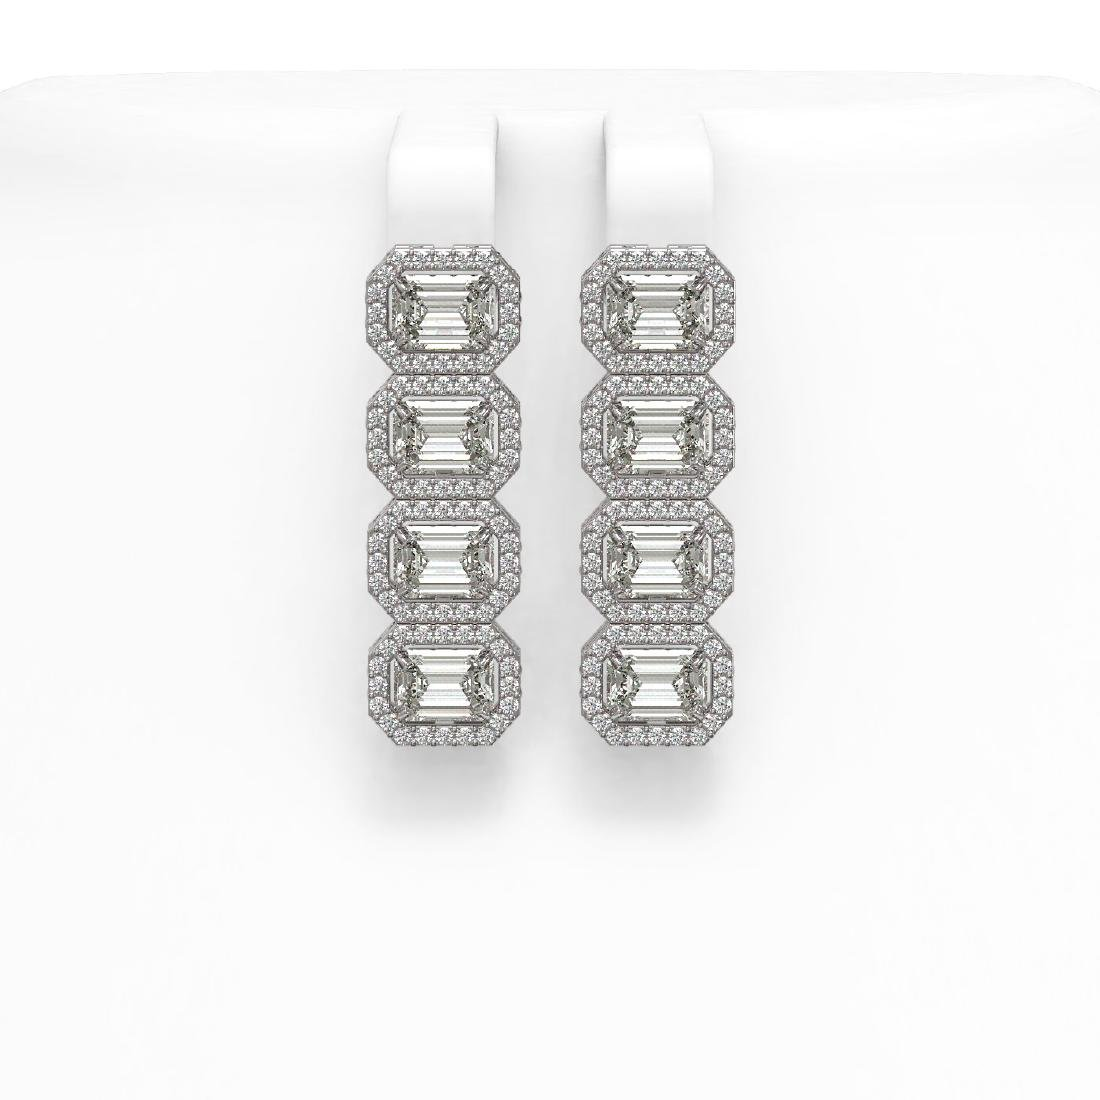 5.33 CTW Emerald Cut Diamond Designer Earrings 18K